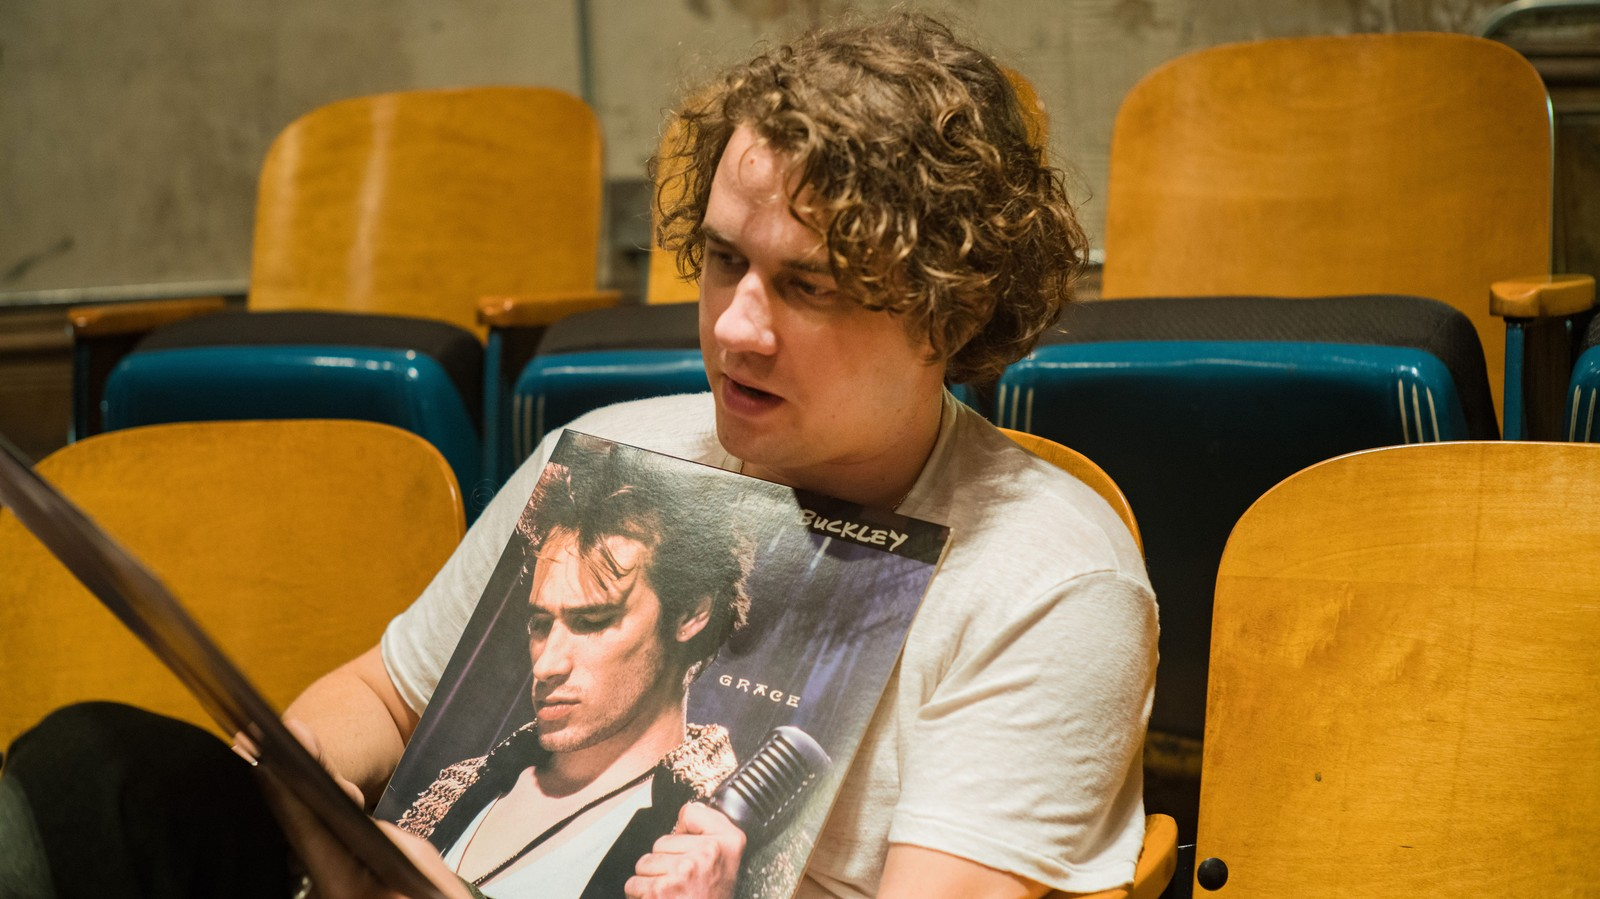 Kevin Morby Listens to Jeff Buckley: 'Like Watching LeBron Play Basketball'